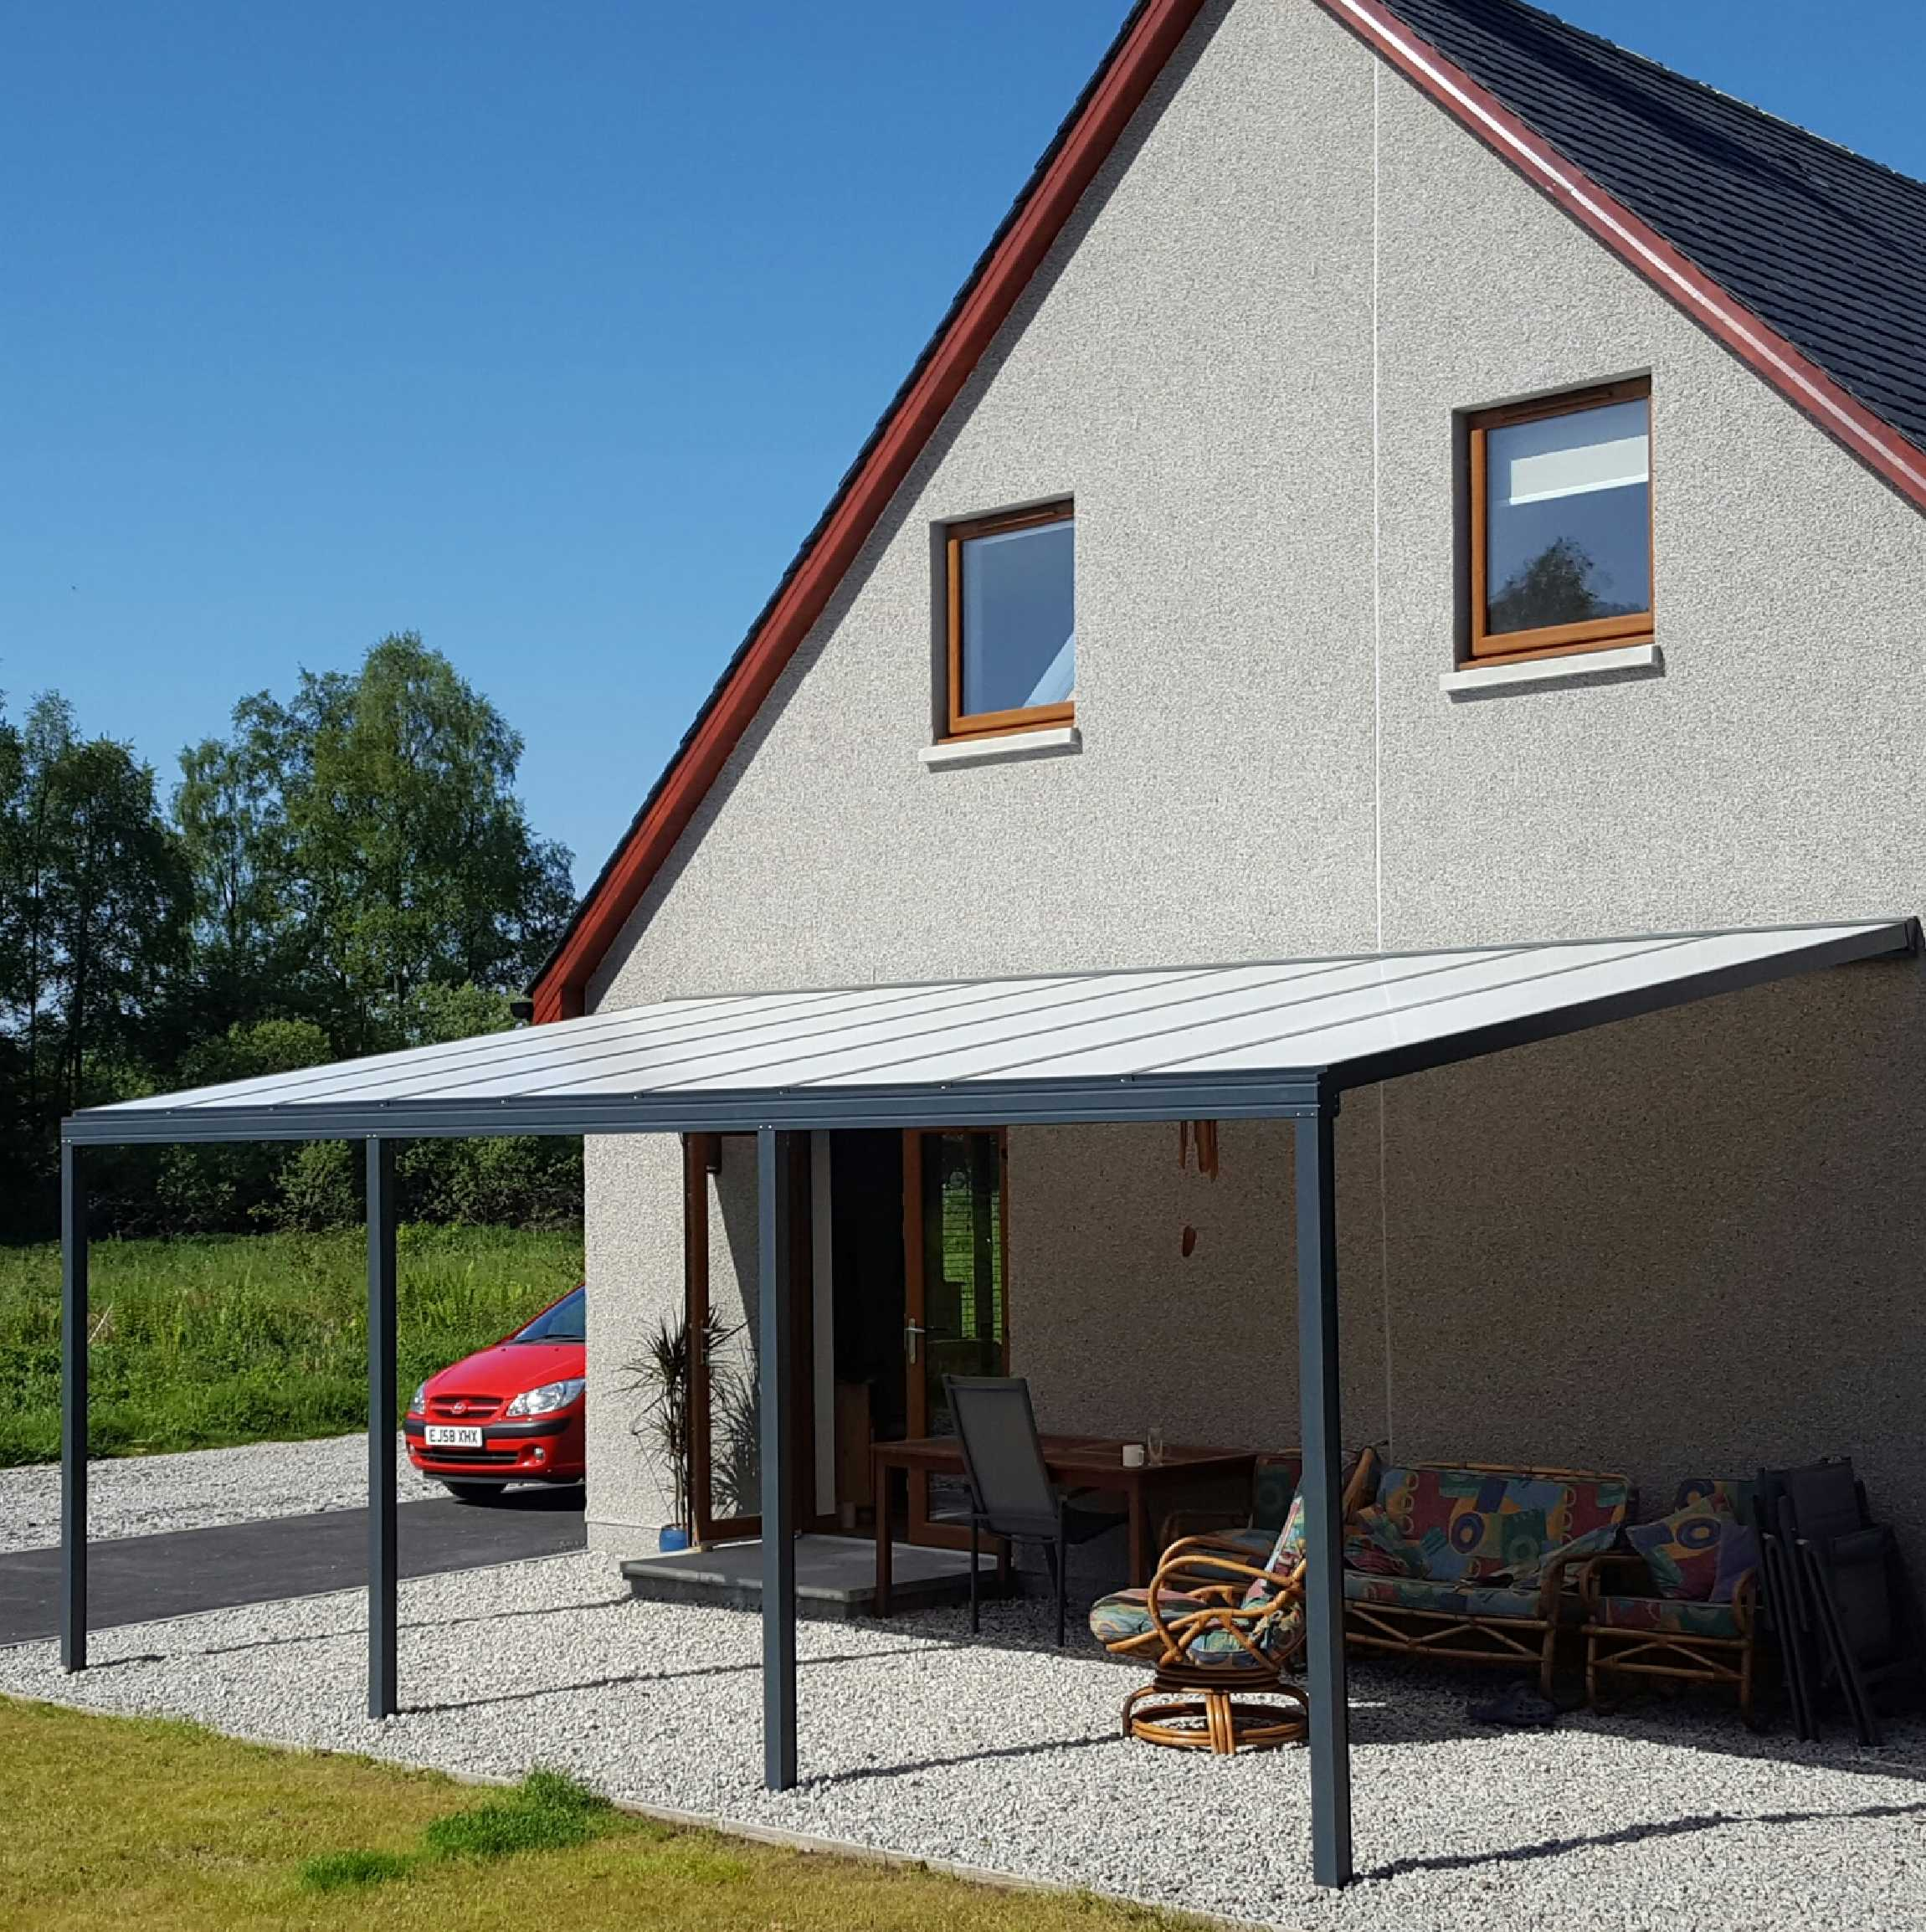 Great selection of Omega Smart Lean-To Canopy, Anthracite Grey, 16mm Polycarbonate Glazing - 7.0m (W) x 4.0m (P), (4) Supporting Posts